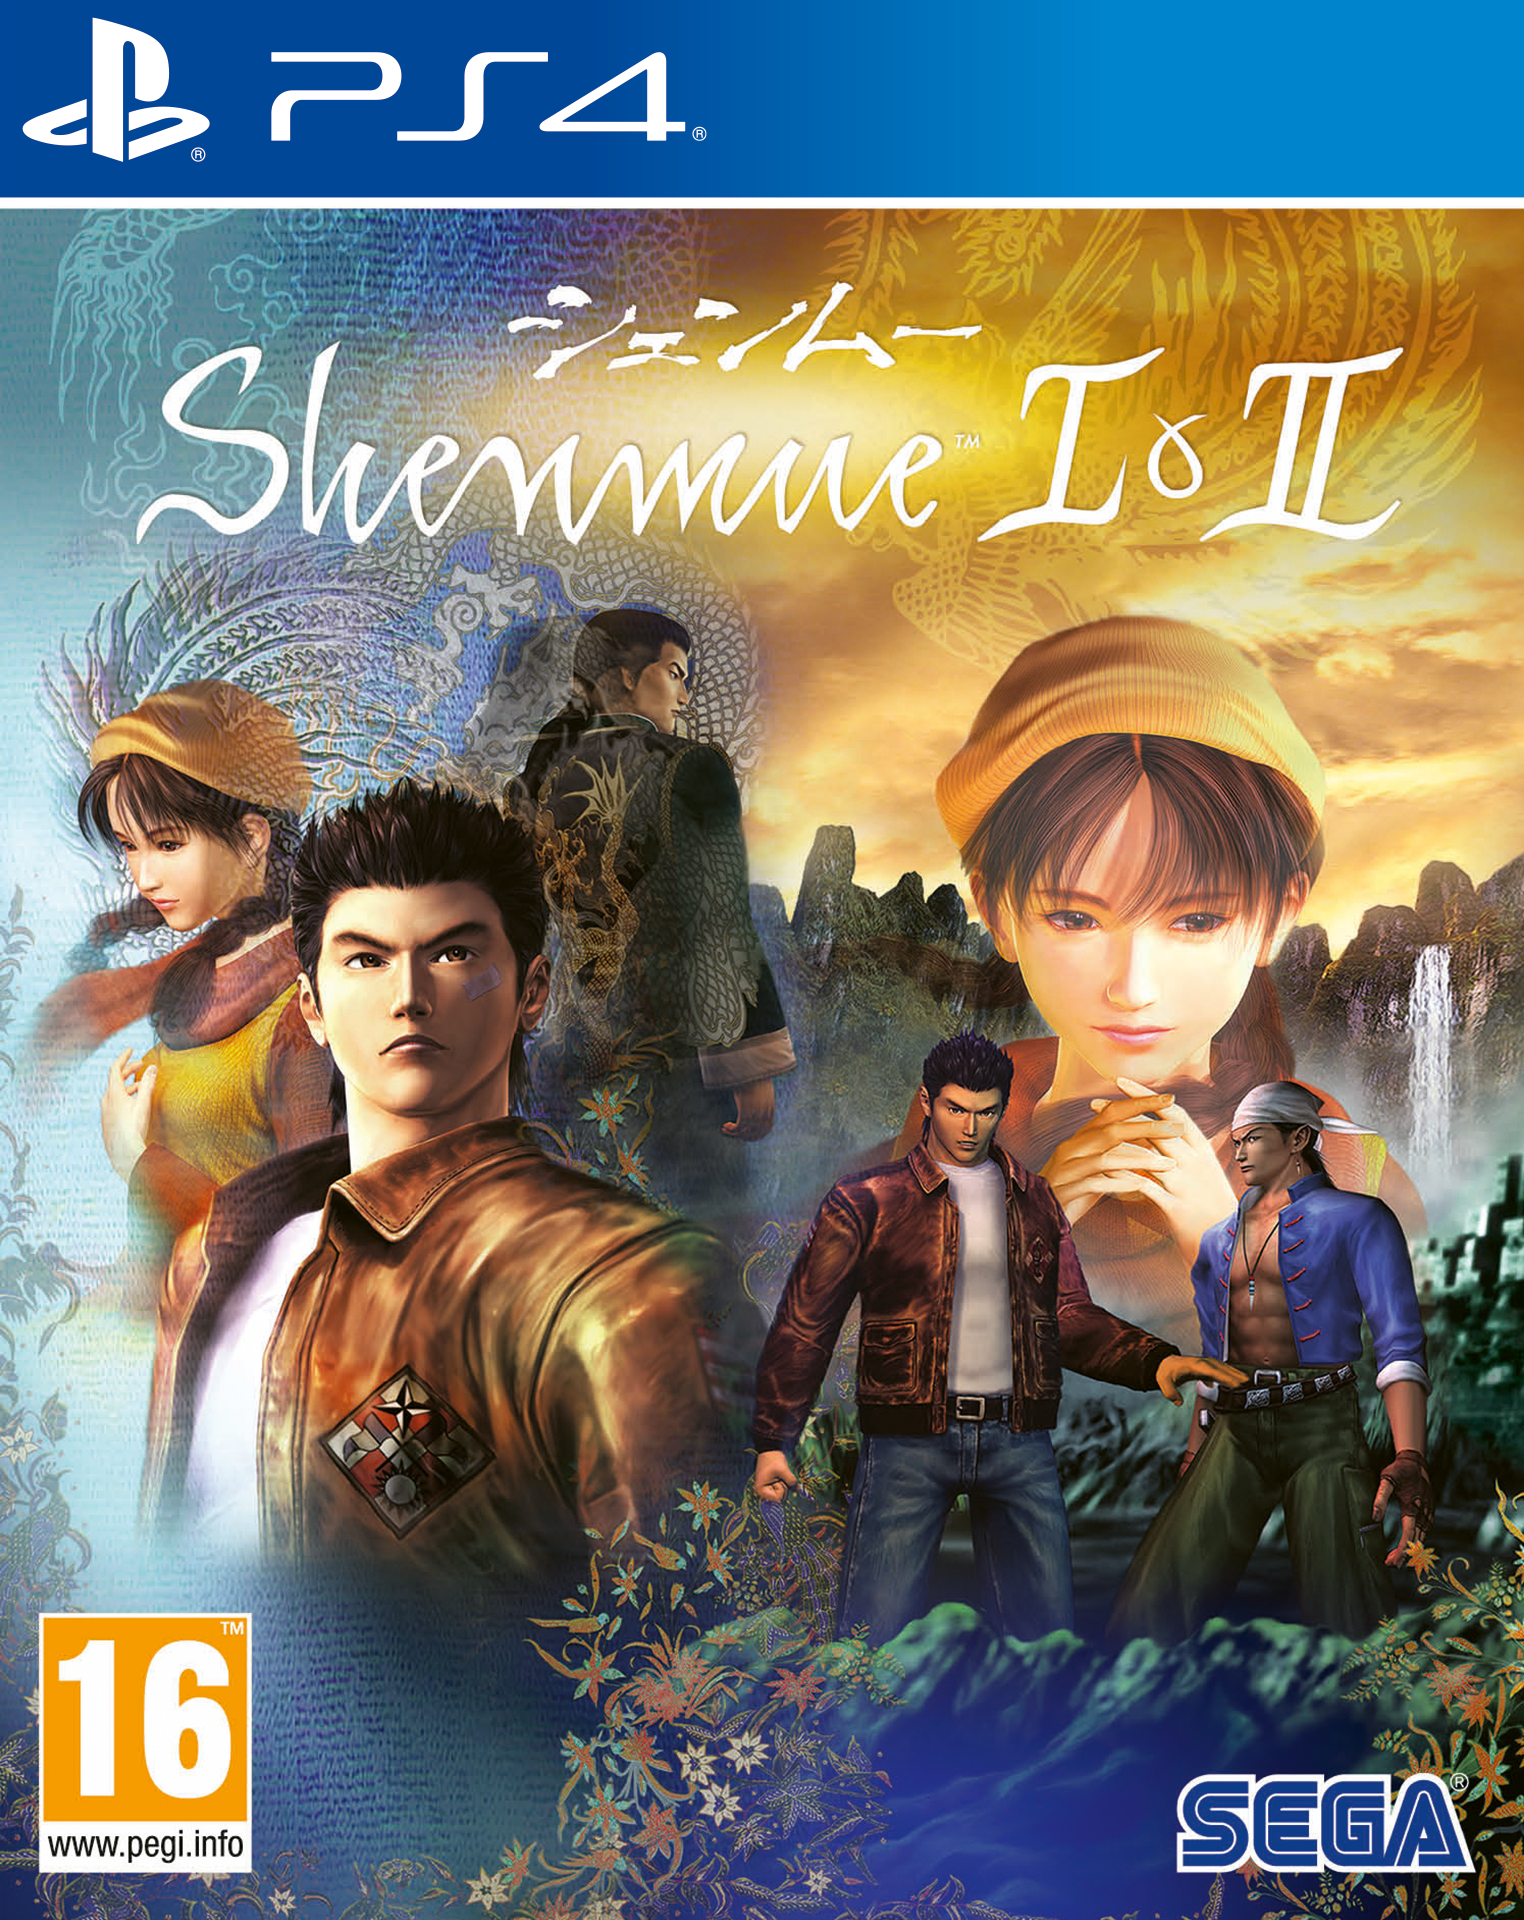 Shenmue 1 + 2 Pack